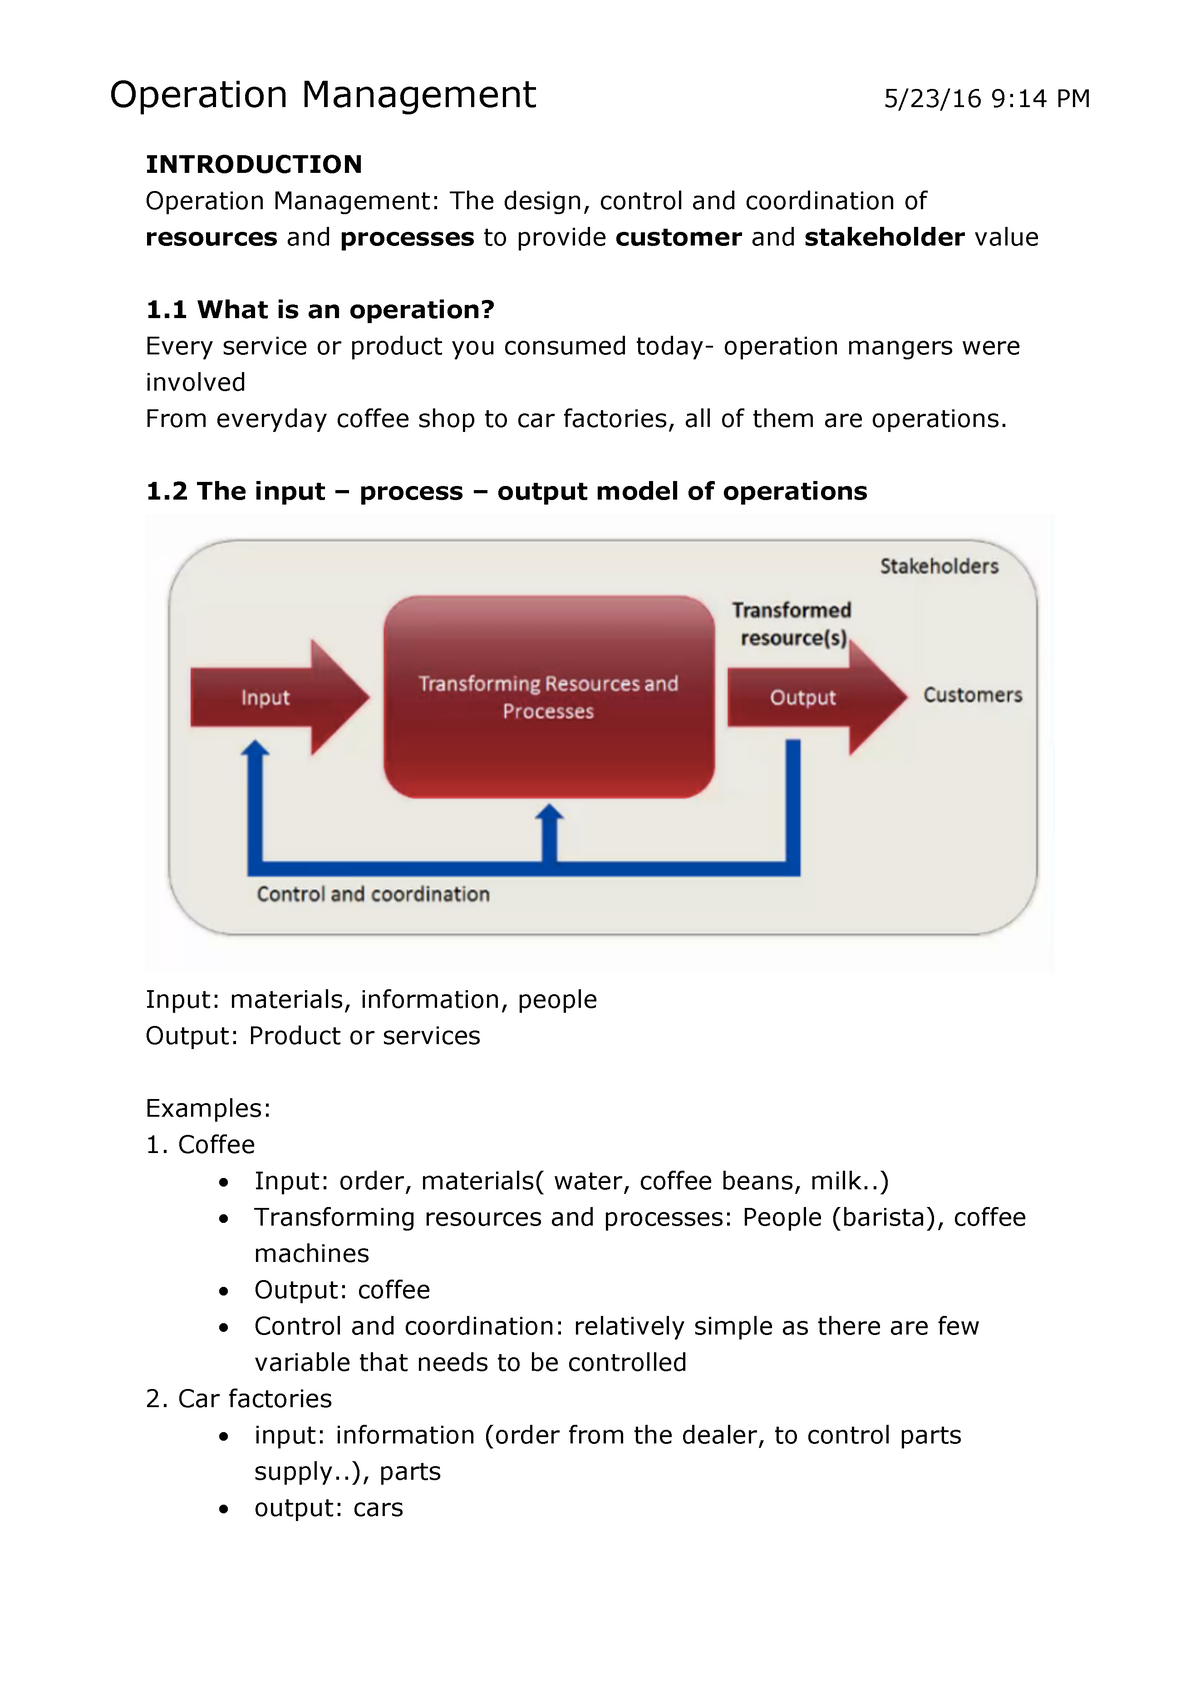 Operation Management Study Material Notes - IB120 - Warwick